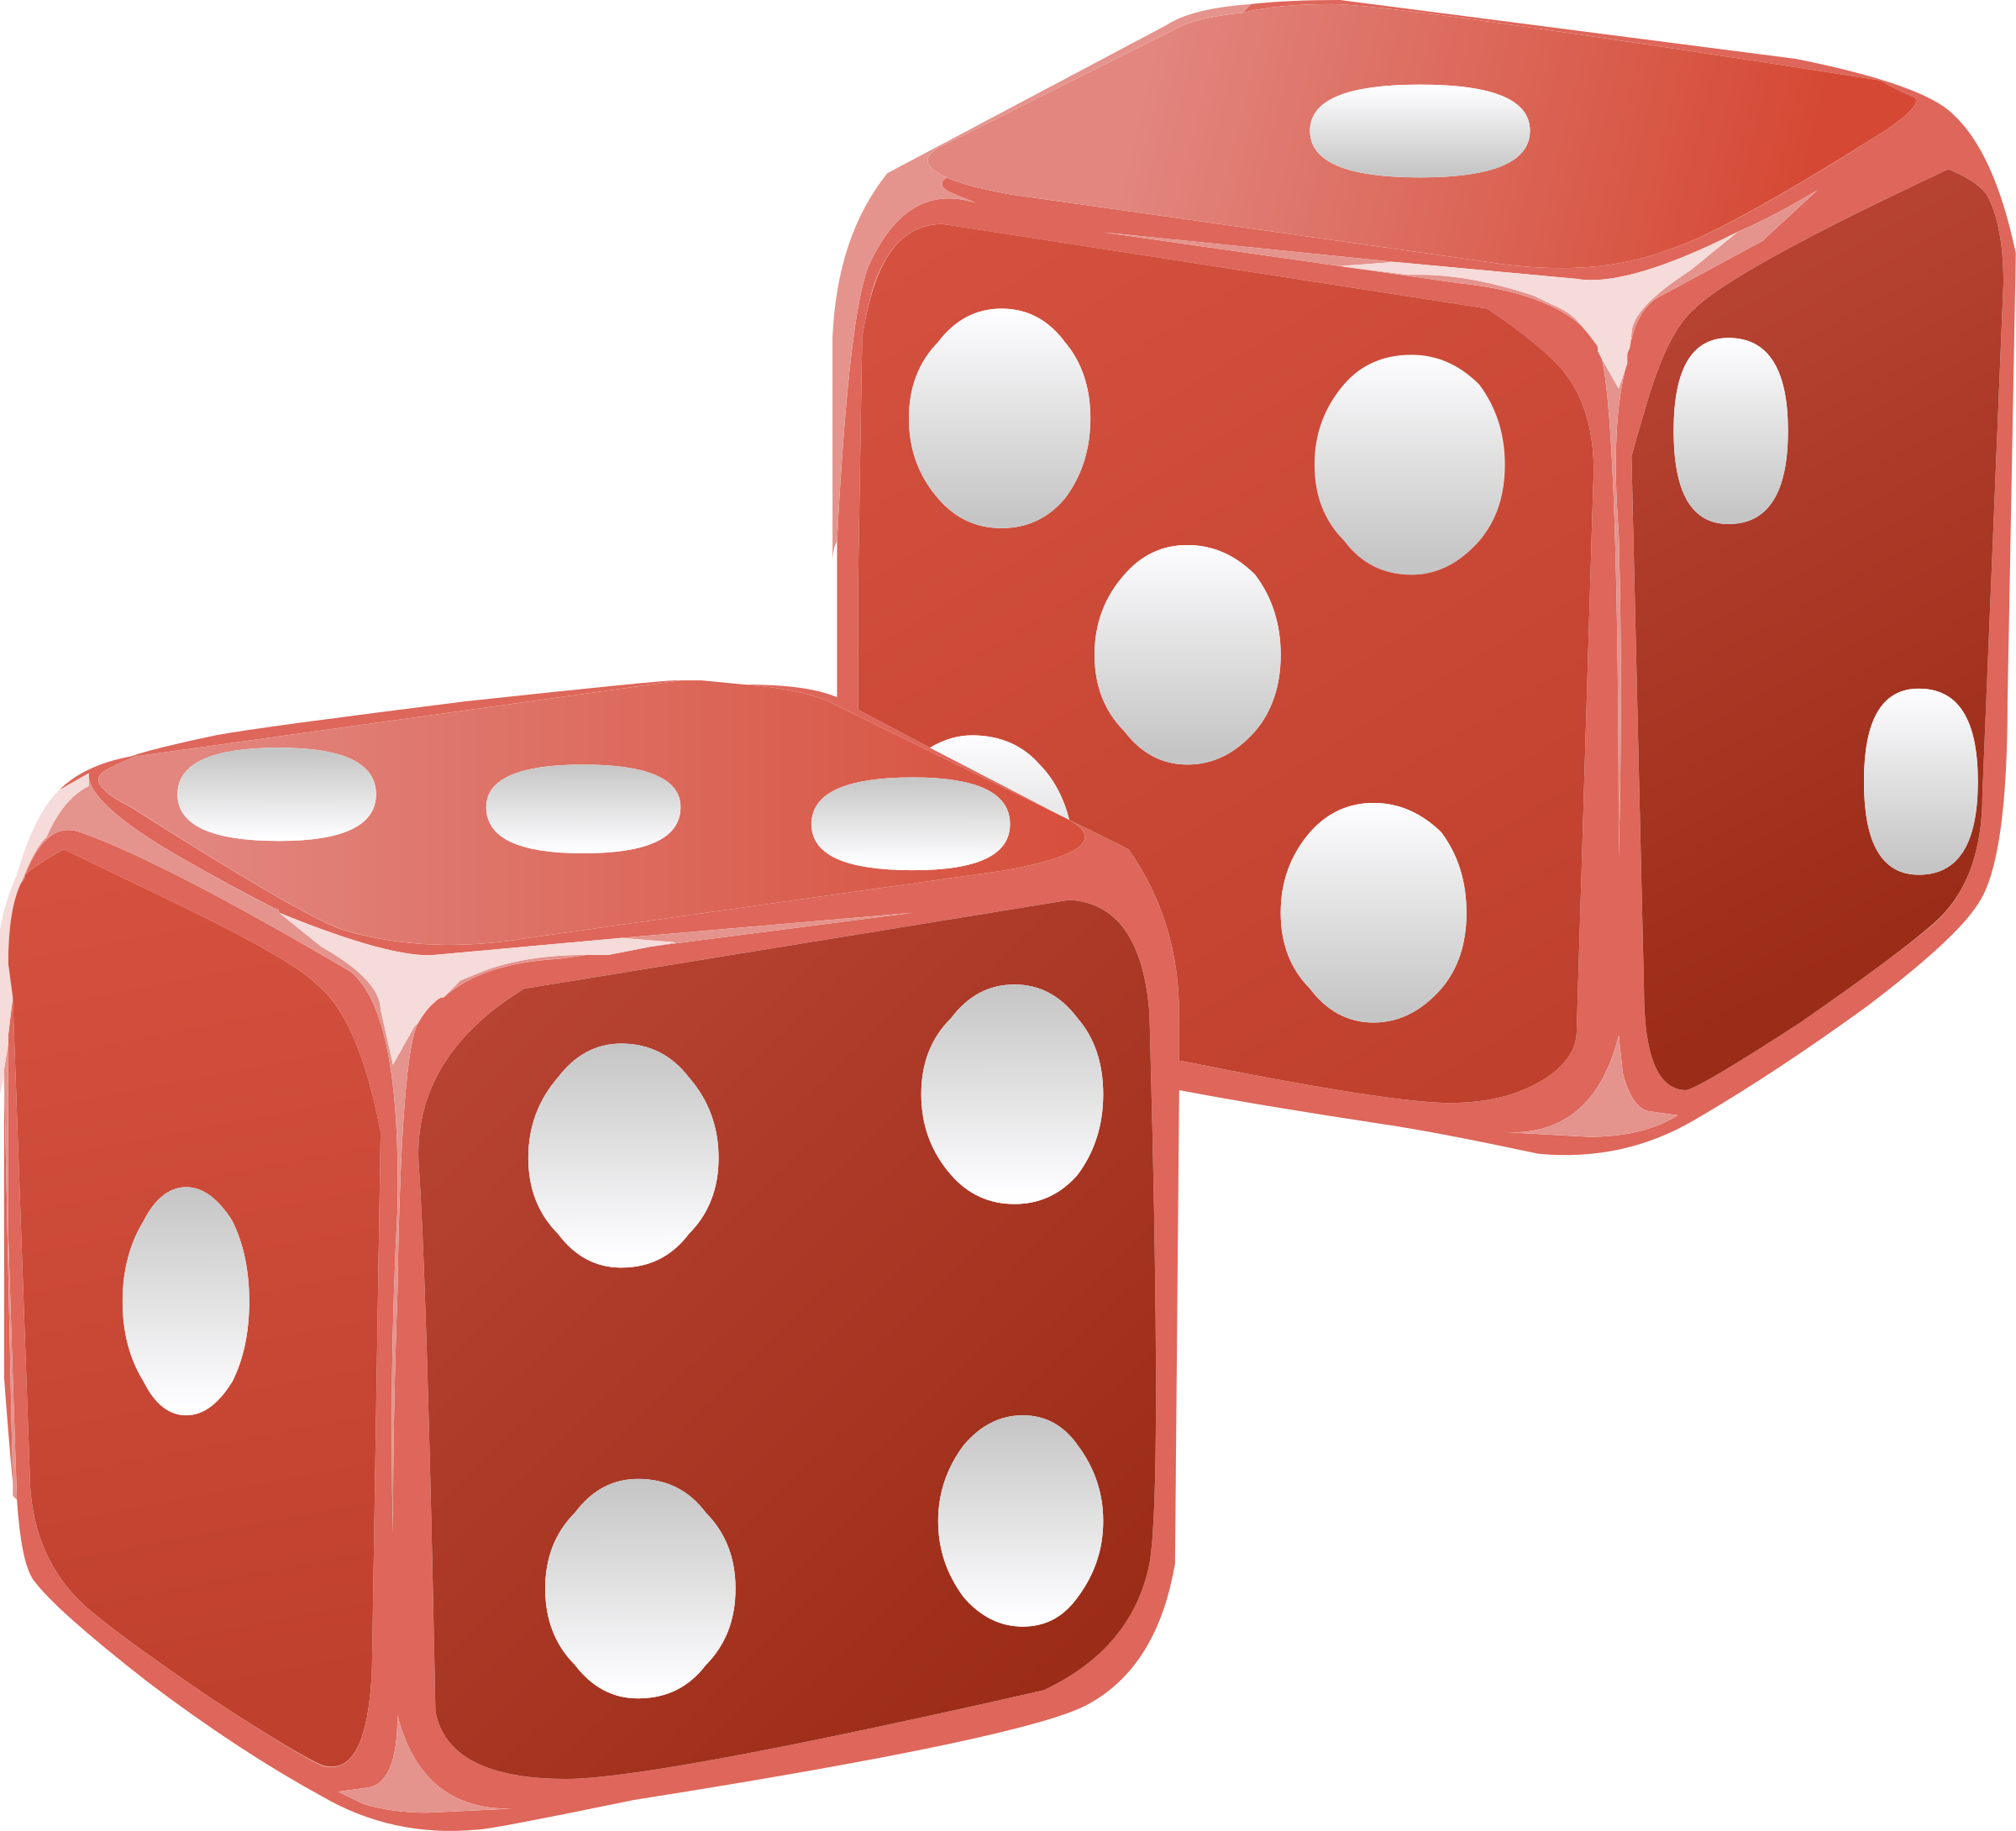 Dice clipart public domain. Misc icons png free